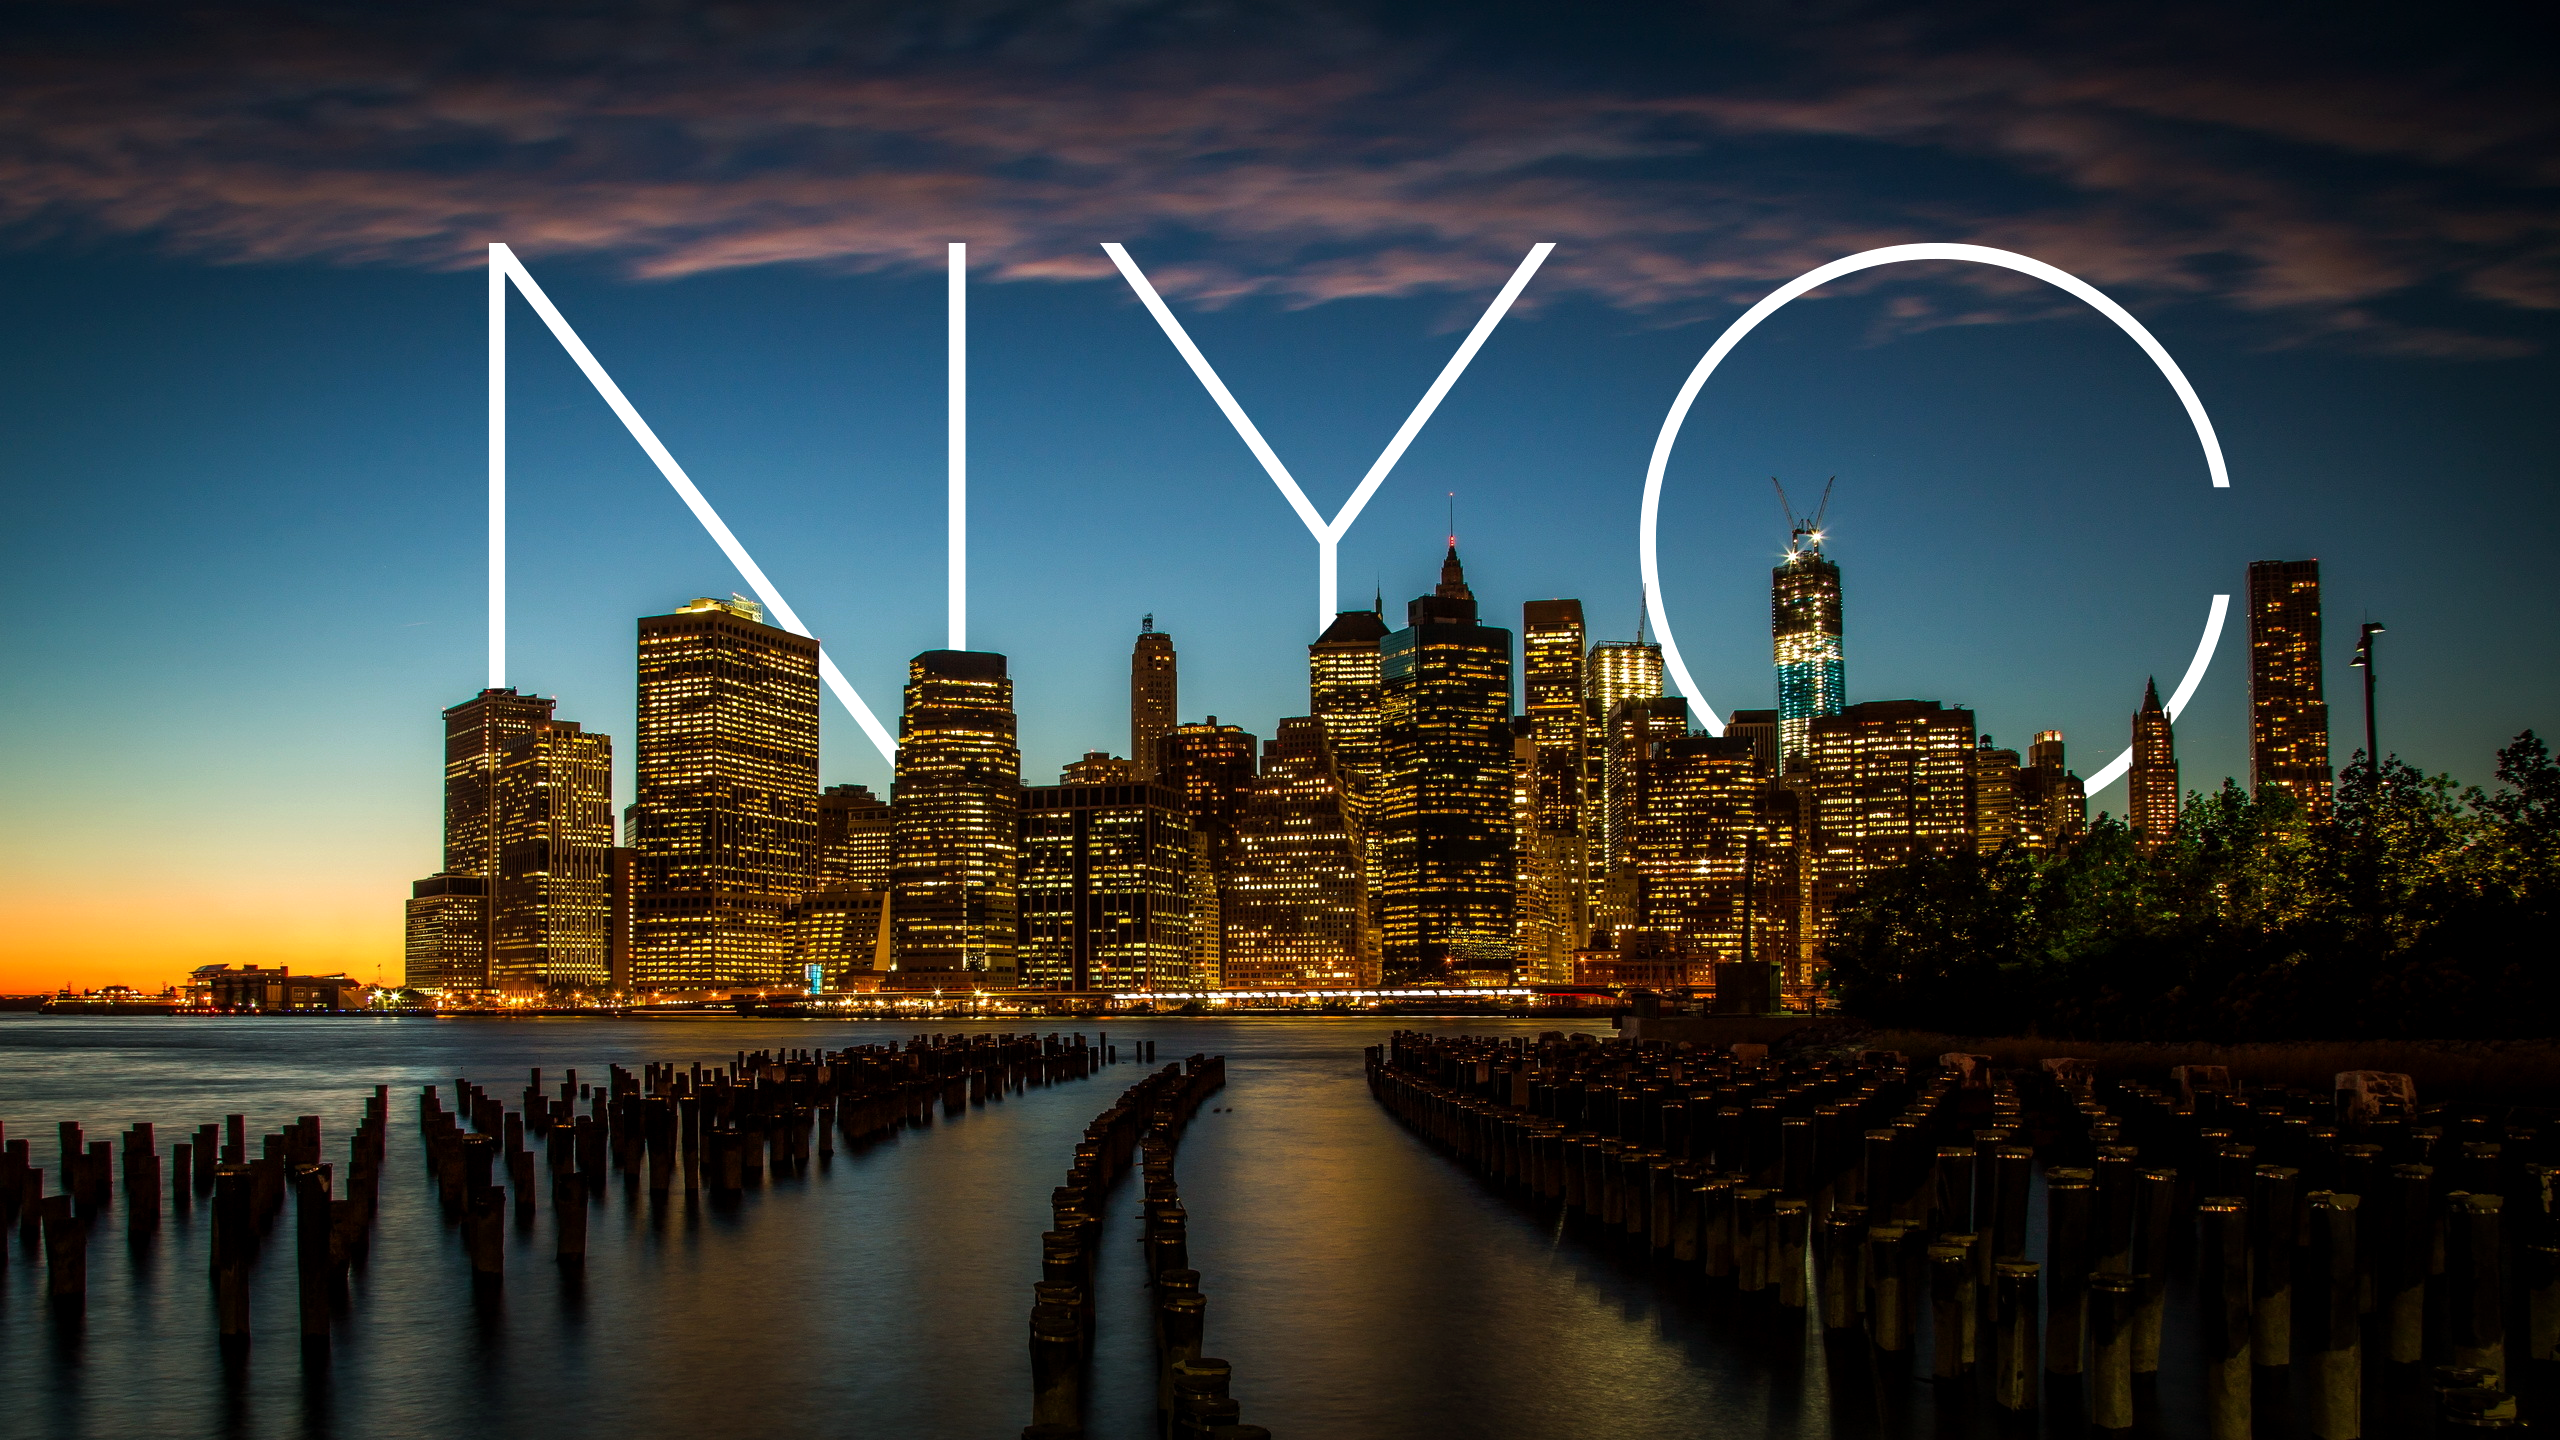 The hottest secret things to do in NYC - Time Out New York